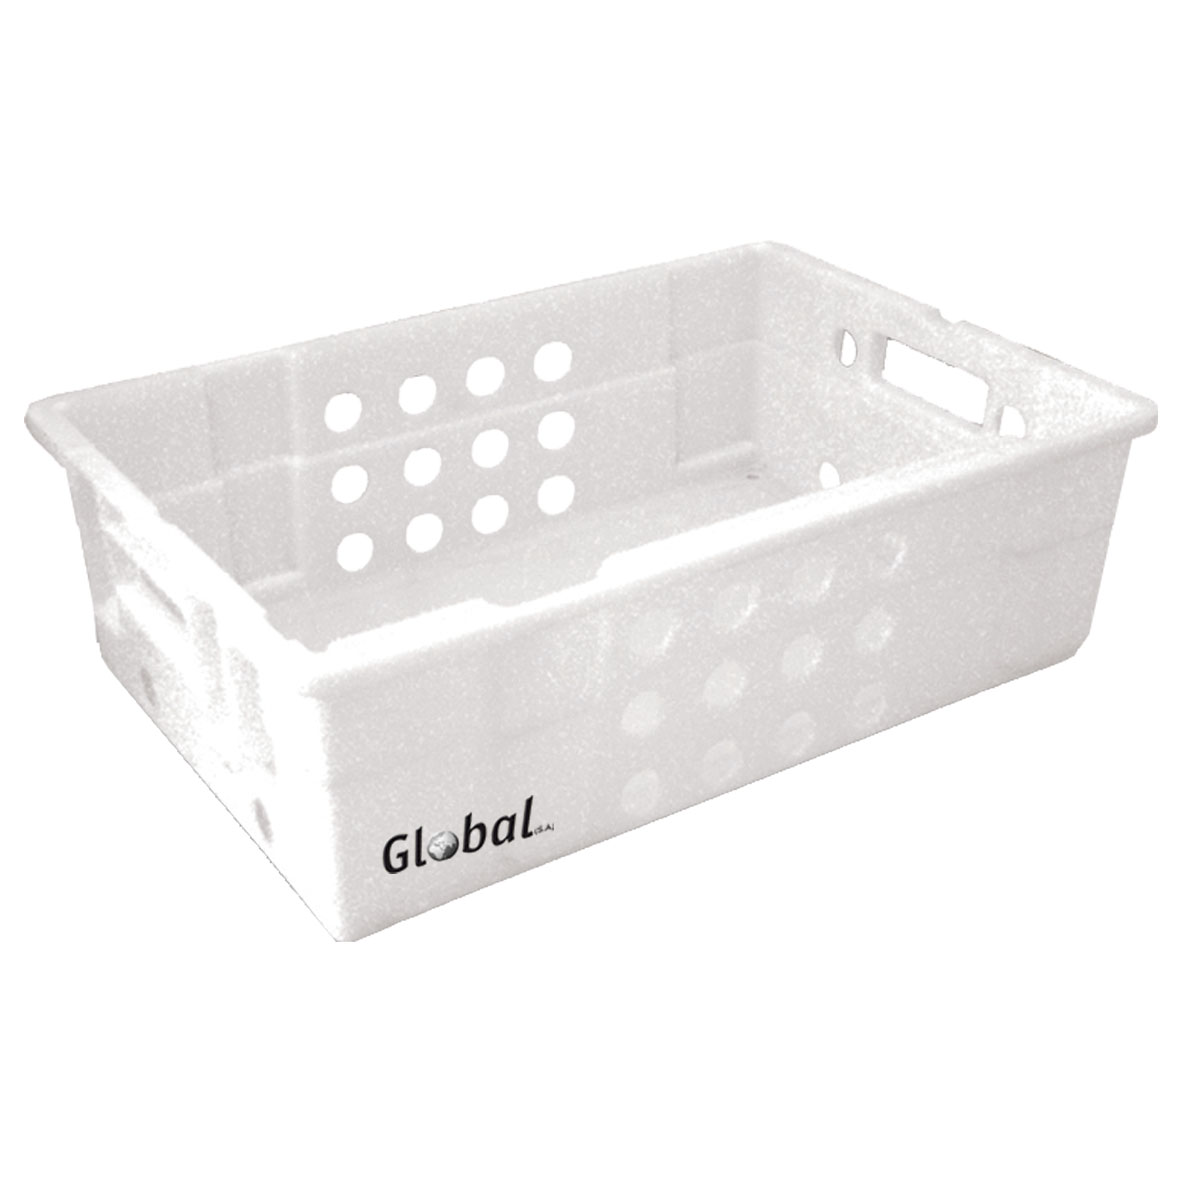 FREEZER CRATE PLASTIC - VENTED - 600 x 400 x 188mm